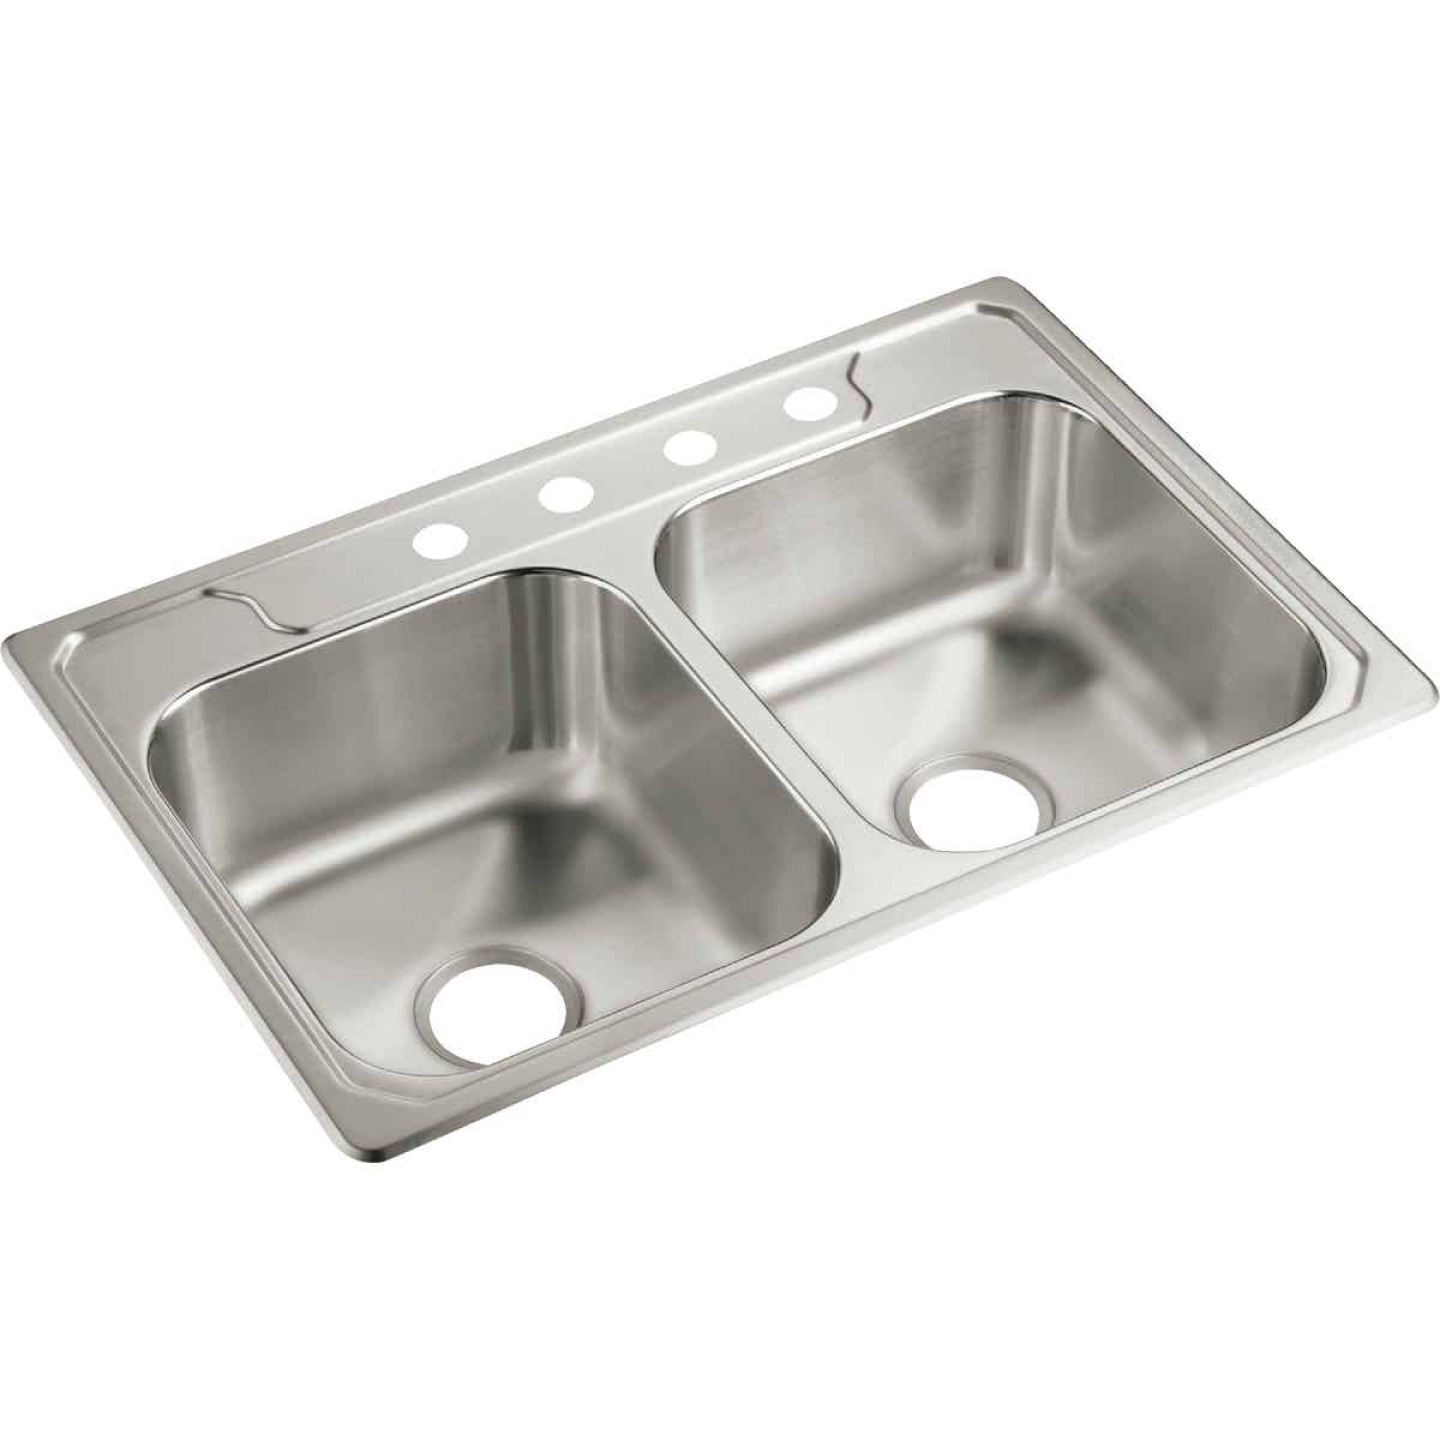 Sterling Middleton Double Bowl 33 In. x 22 In. x 7 In. Deep Stainless Steel Kitchen Sink Image 1